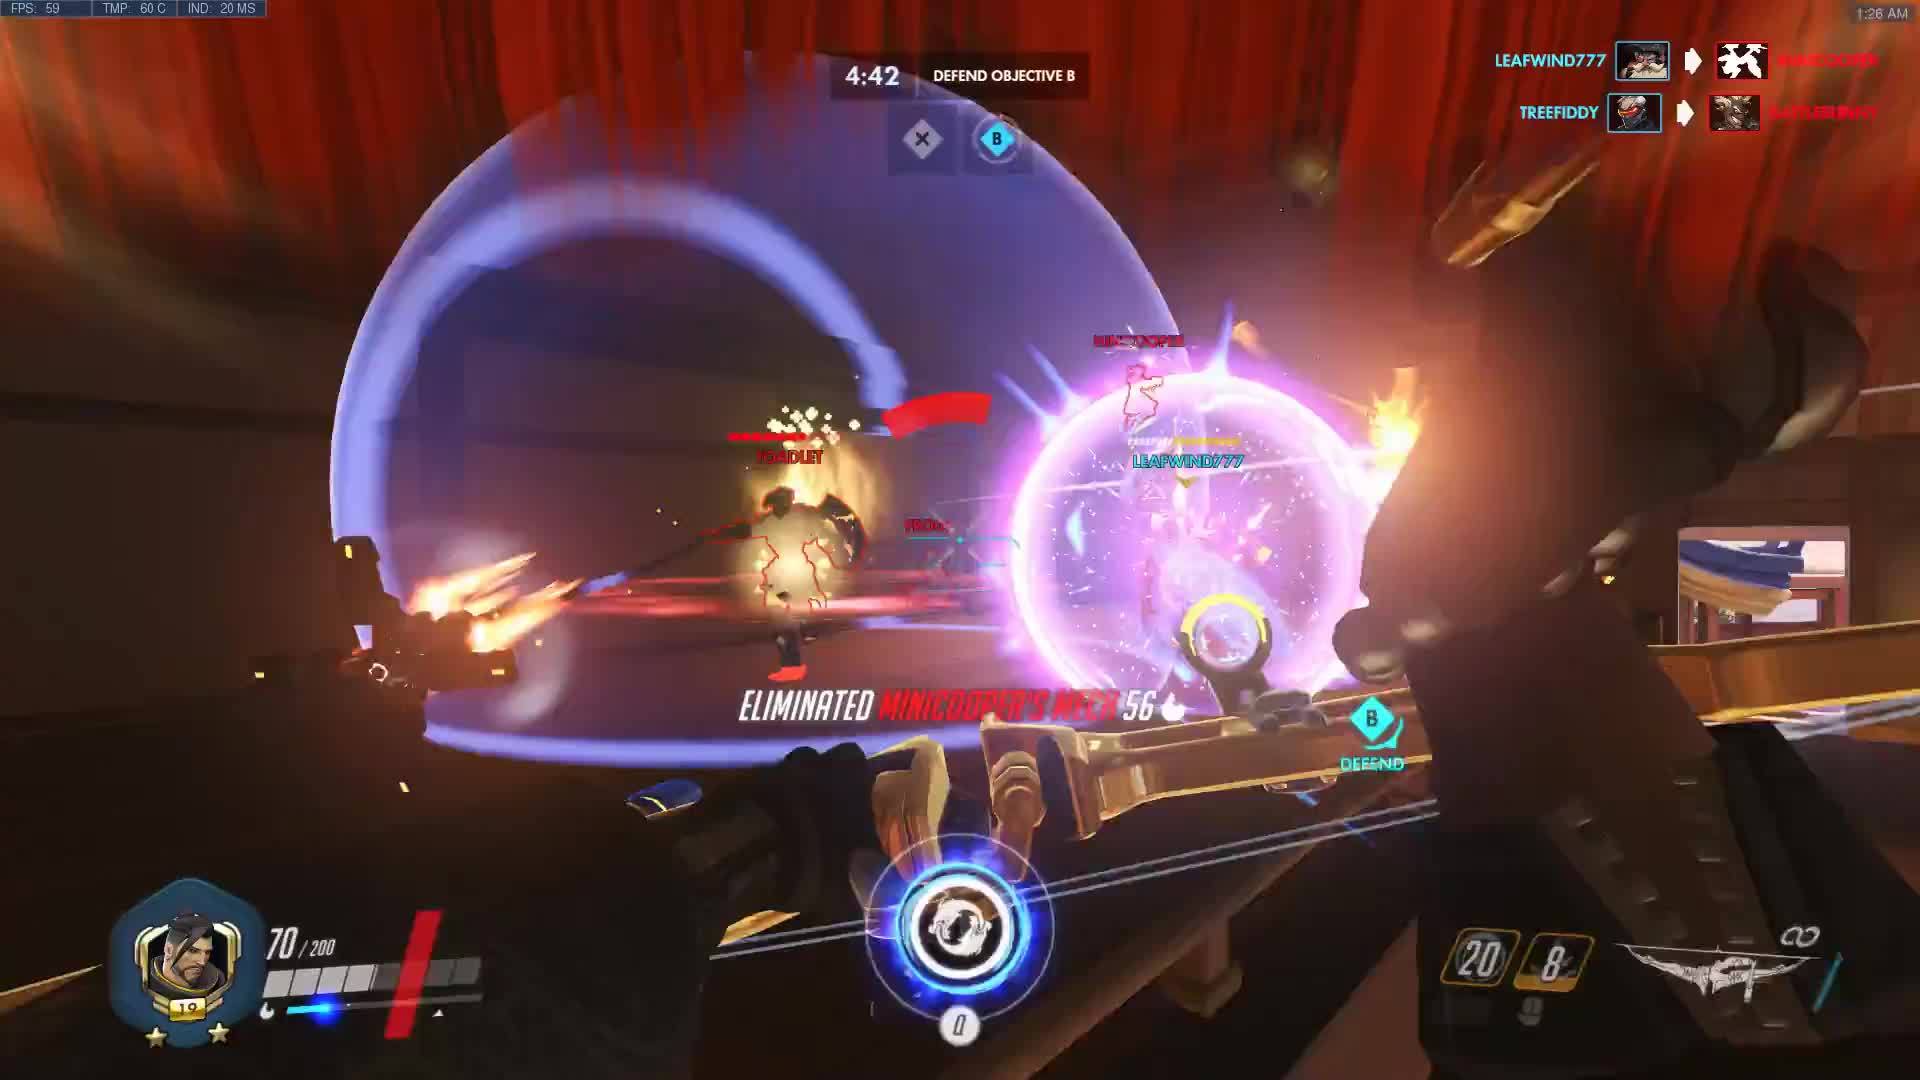 My greatest ult in 1200 hours